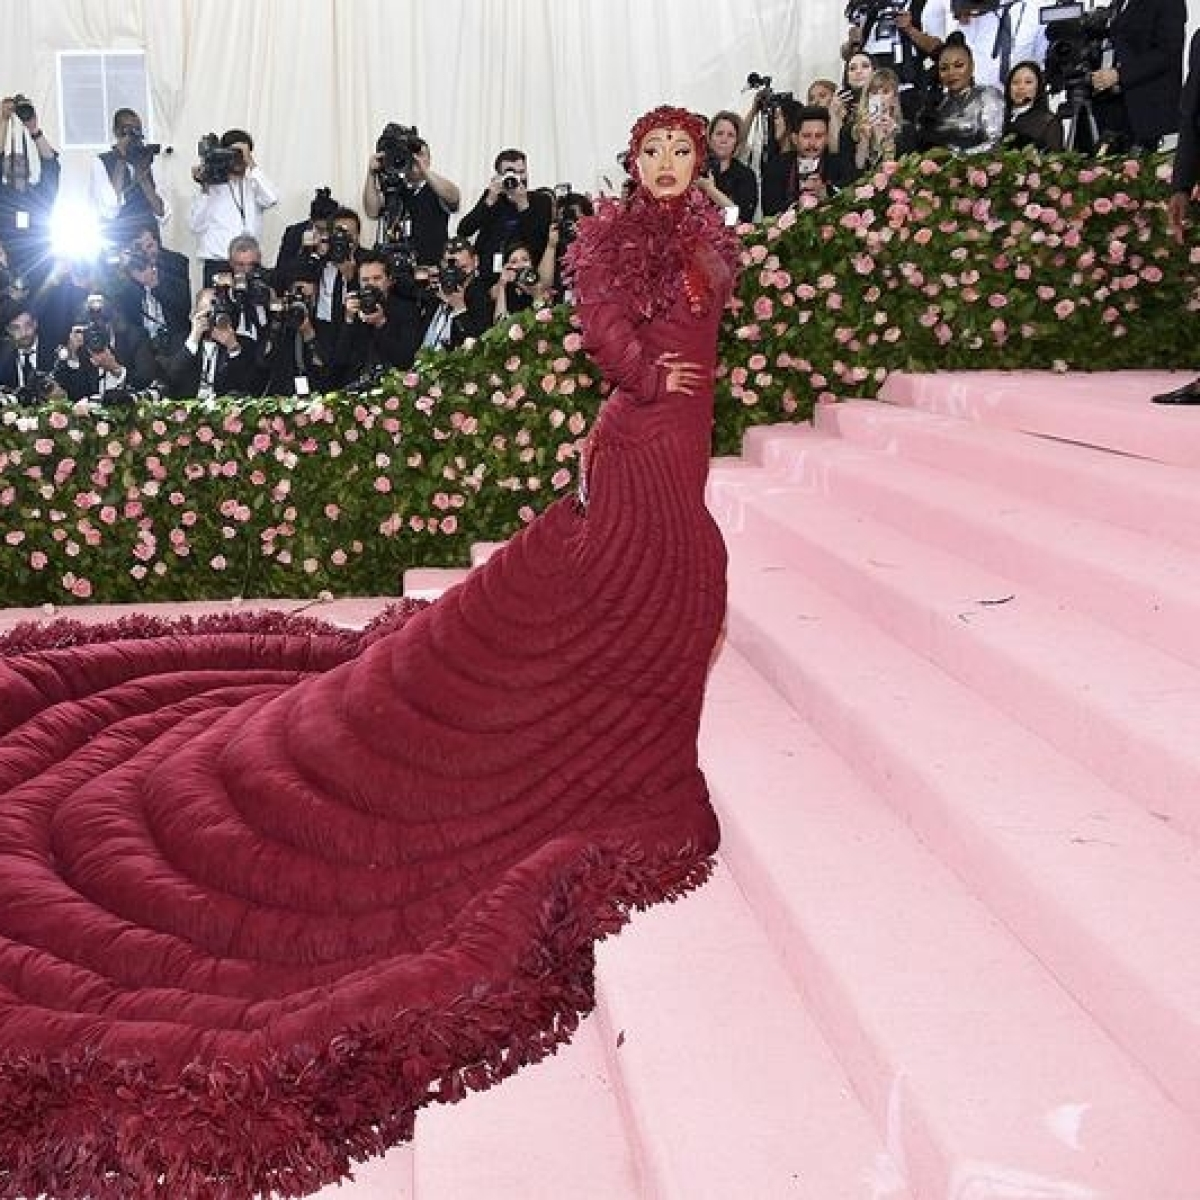 After Cannes Film Festival, Met Gala 2020 postponed amid coronavirus scare